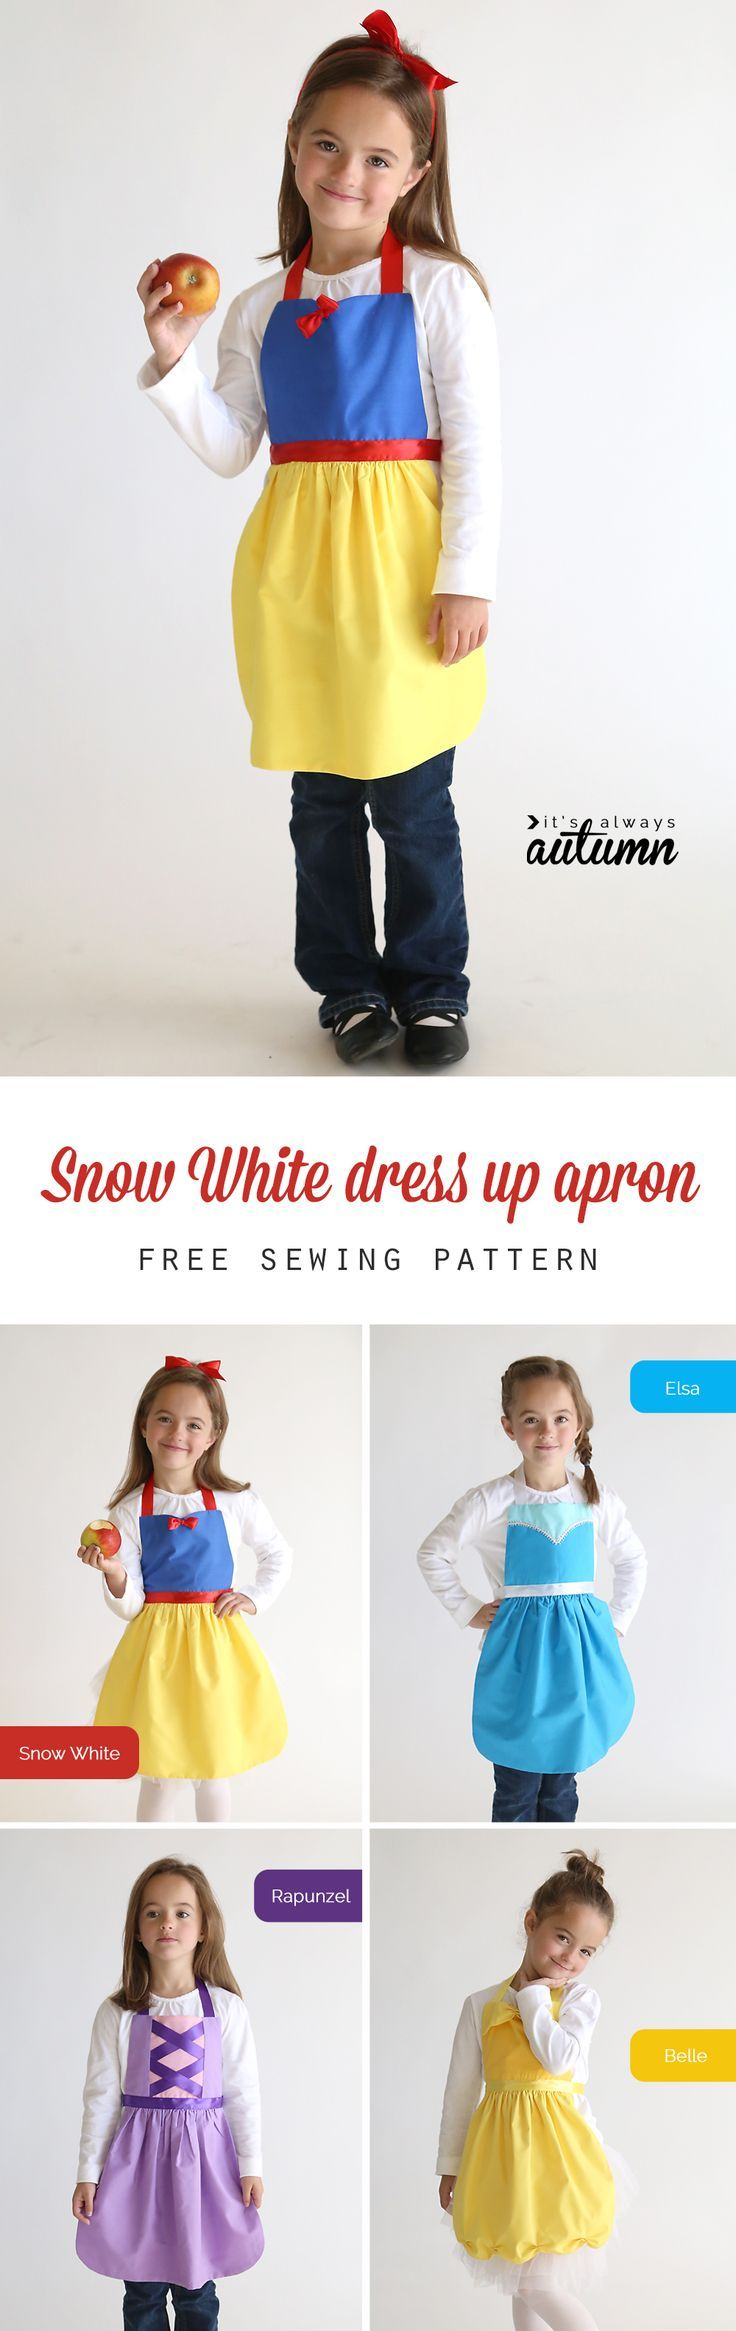 So adorable! Get the free PDF sewing pattern for this easy to make Snow White princess dress up apron in sizes 2-8 to fit any little girl! Easy DIY Snow White costume or dress up. Great handmade Christmas gift idea. More princess dress up apron patterns on this site too!